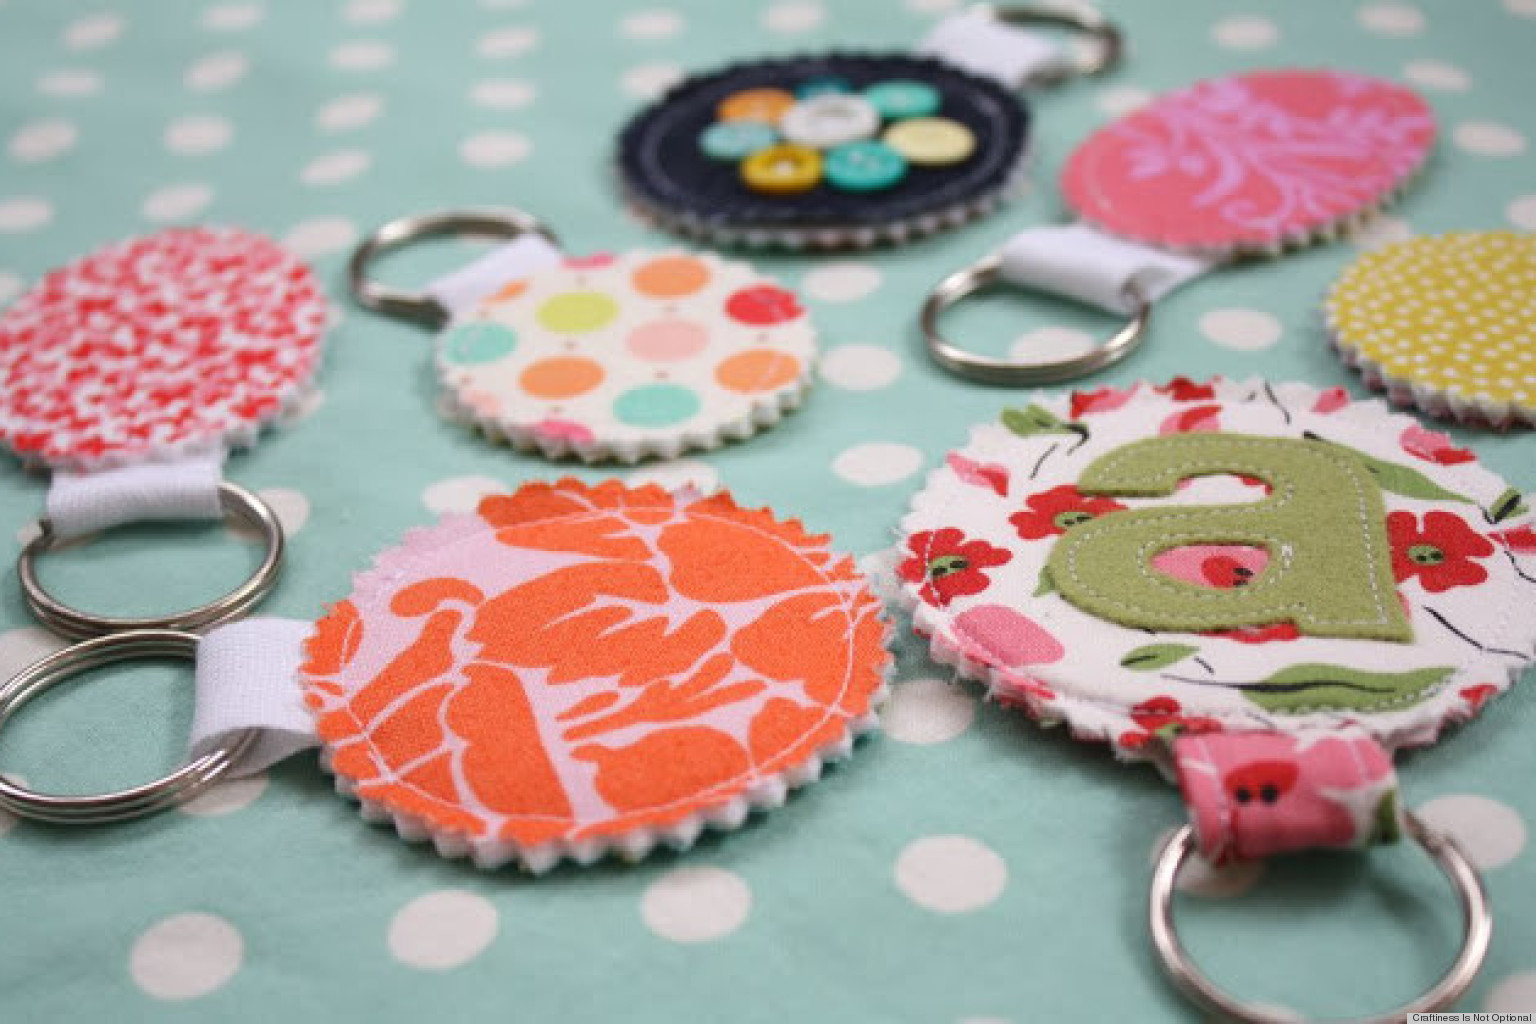 Homemade gift ideas fabric scrap keychains perfect for - Manualidades faciles de hacer en casa ...